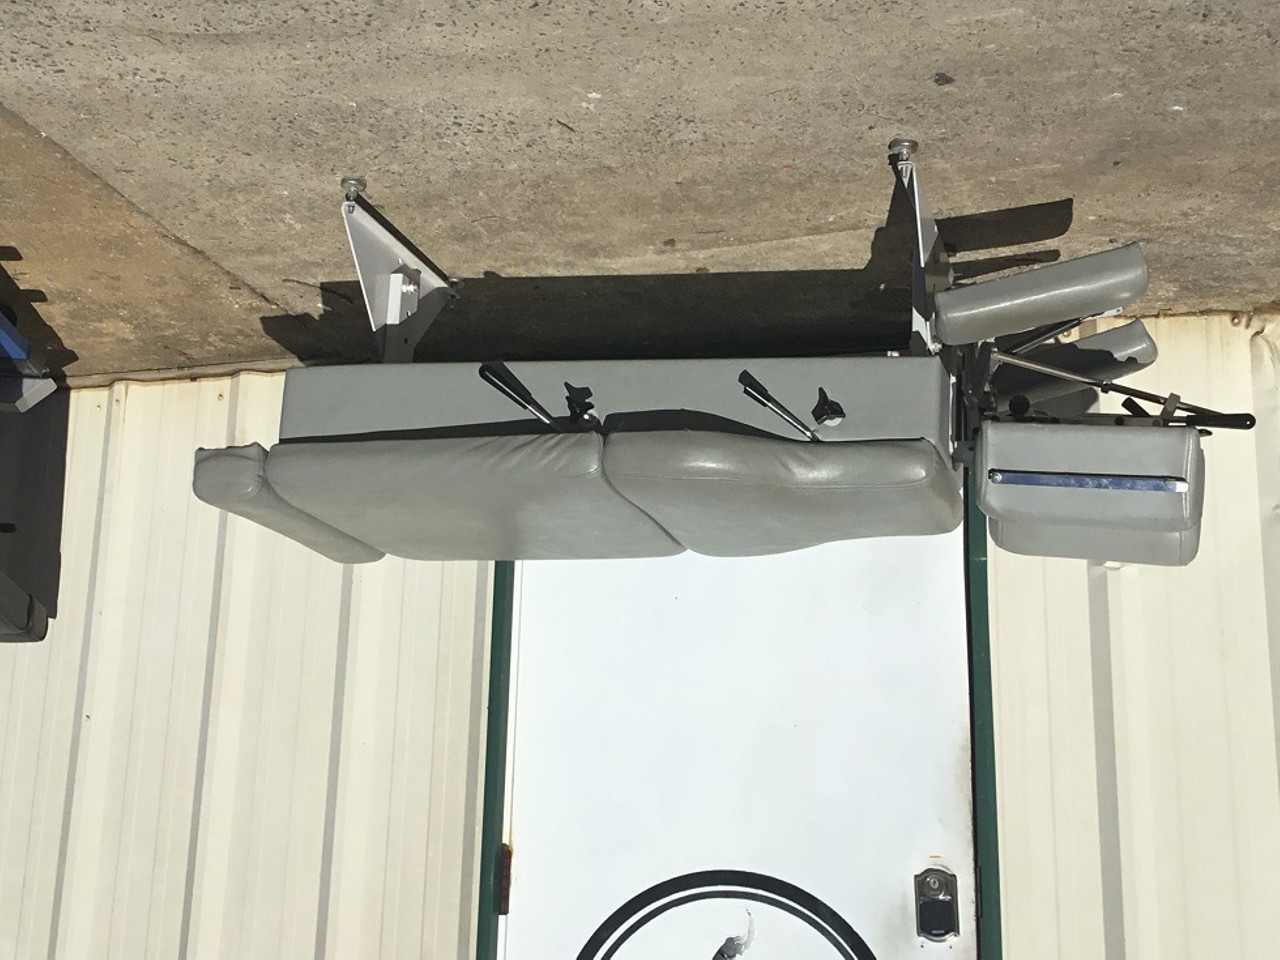 Lloyd  Drop Bench Table ,Lloyd 402  Drop  Table ,Lloyd 402  Drop Bench,Lloyd  Drop Bench Table FOR SALE ,Lloyd 402  Drop  Table FOR SALE ,Lloyd 402  Drop Bench FOR SALE